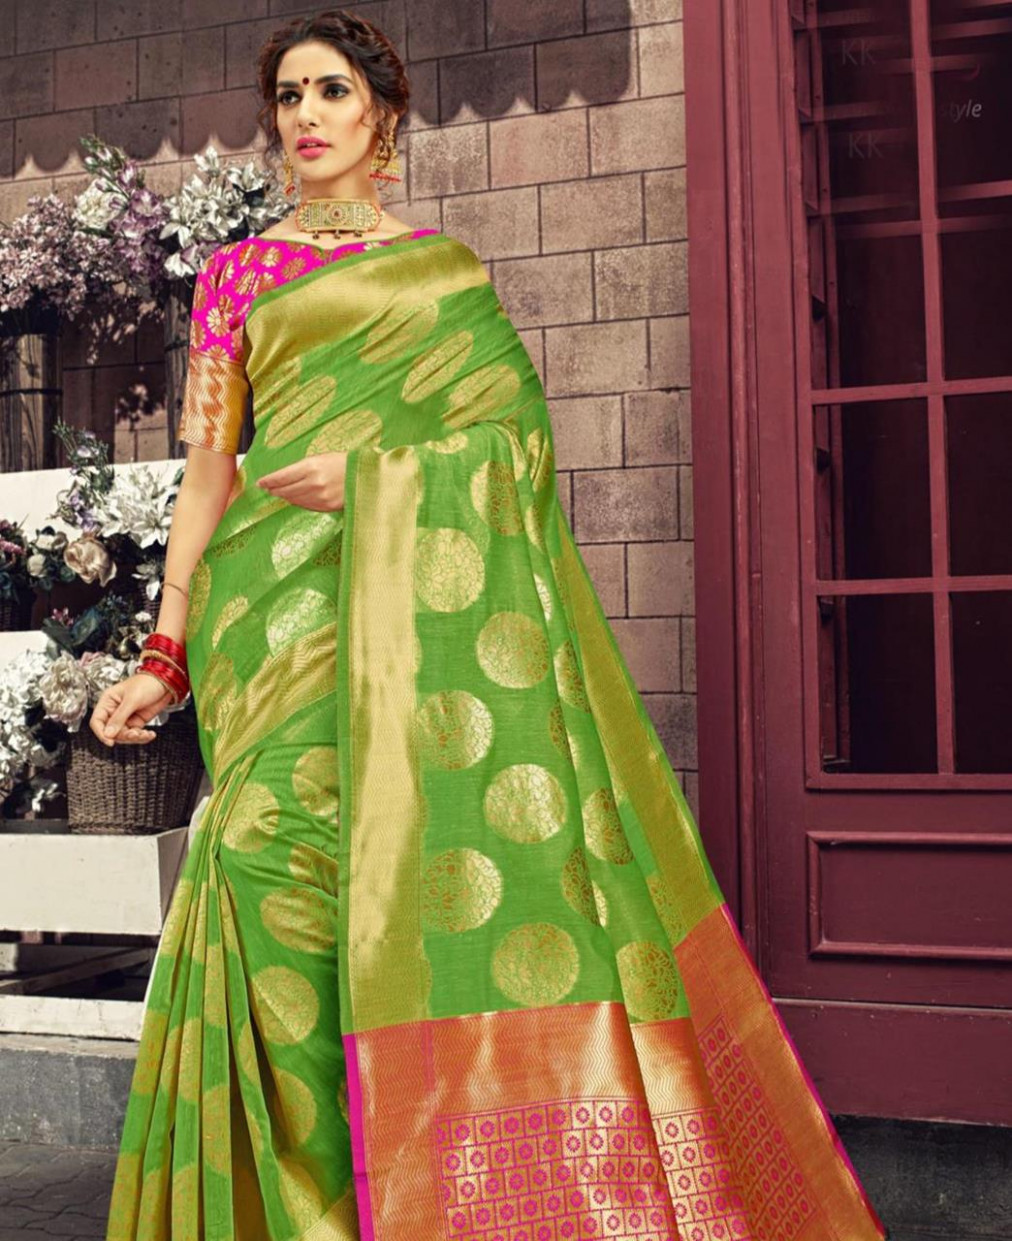 Buy Sightly Lime Green Silk Saree [125732] at 51.74 (AUD)